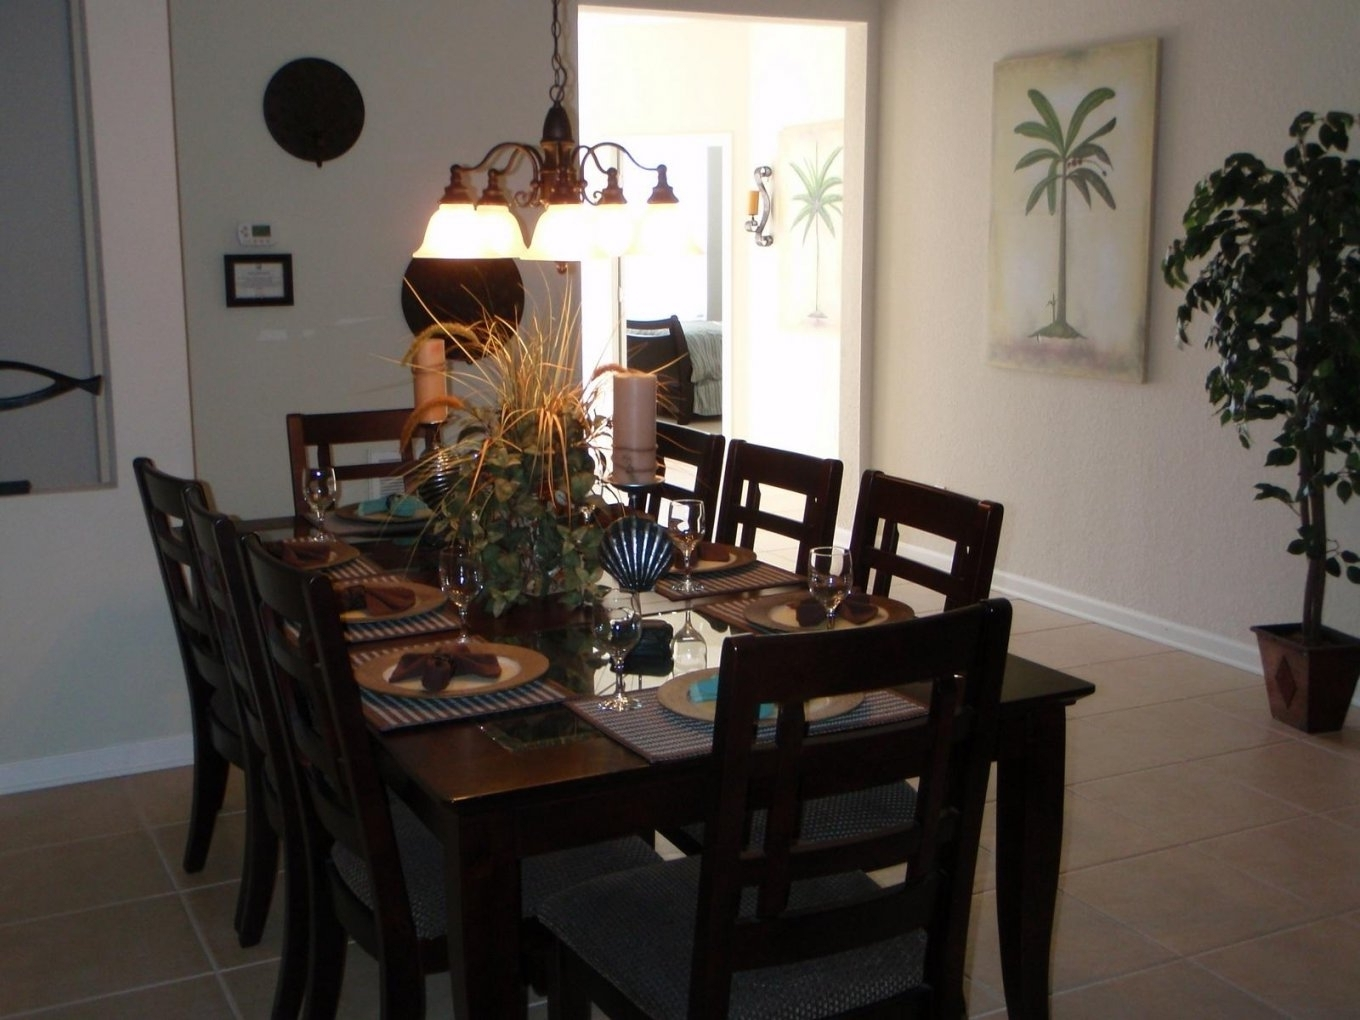 2017 8 Seater Dining Tables And Chairs Throughout Charming Ideas 8 Seat Dining Table Set Homey Idea Seater Dining With (View 1 of 25)